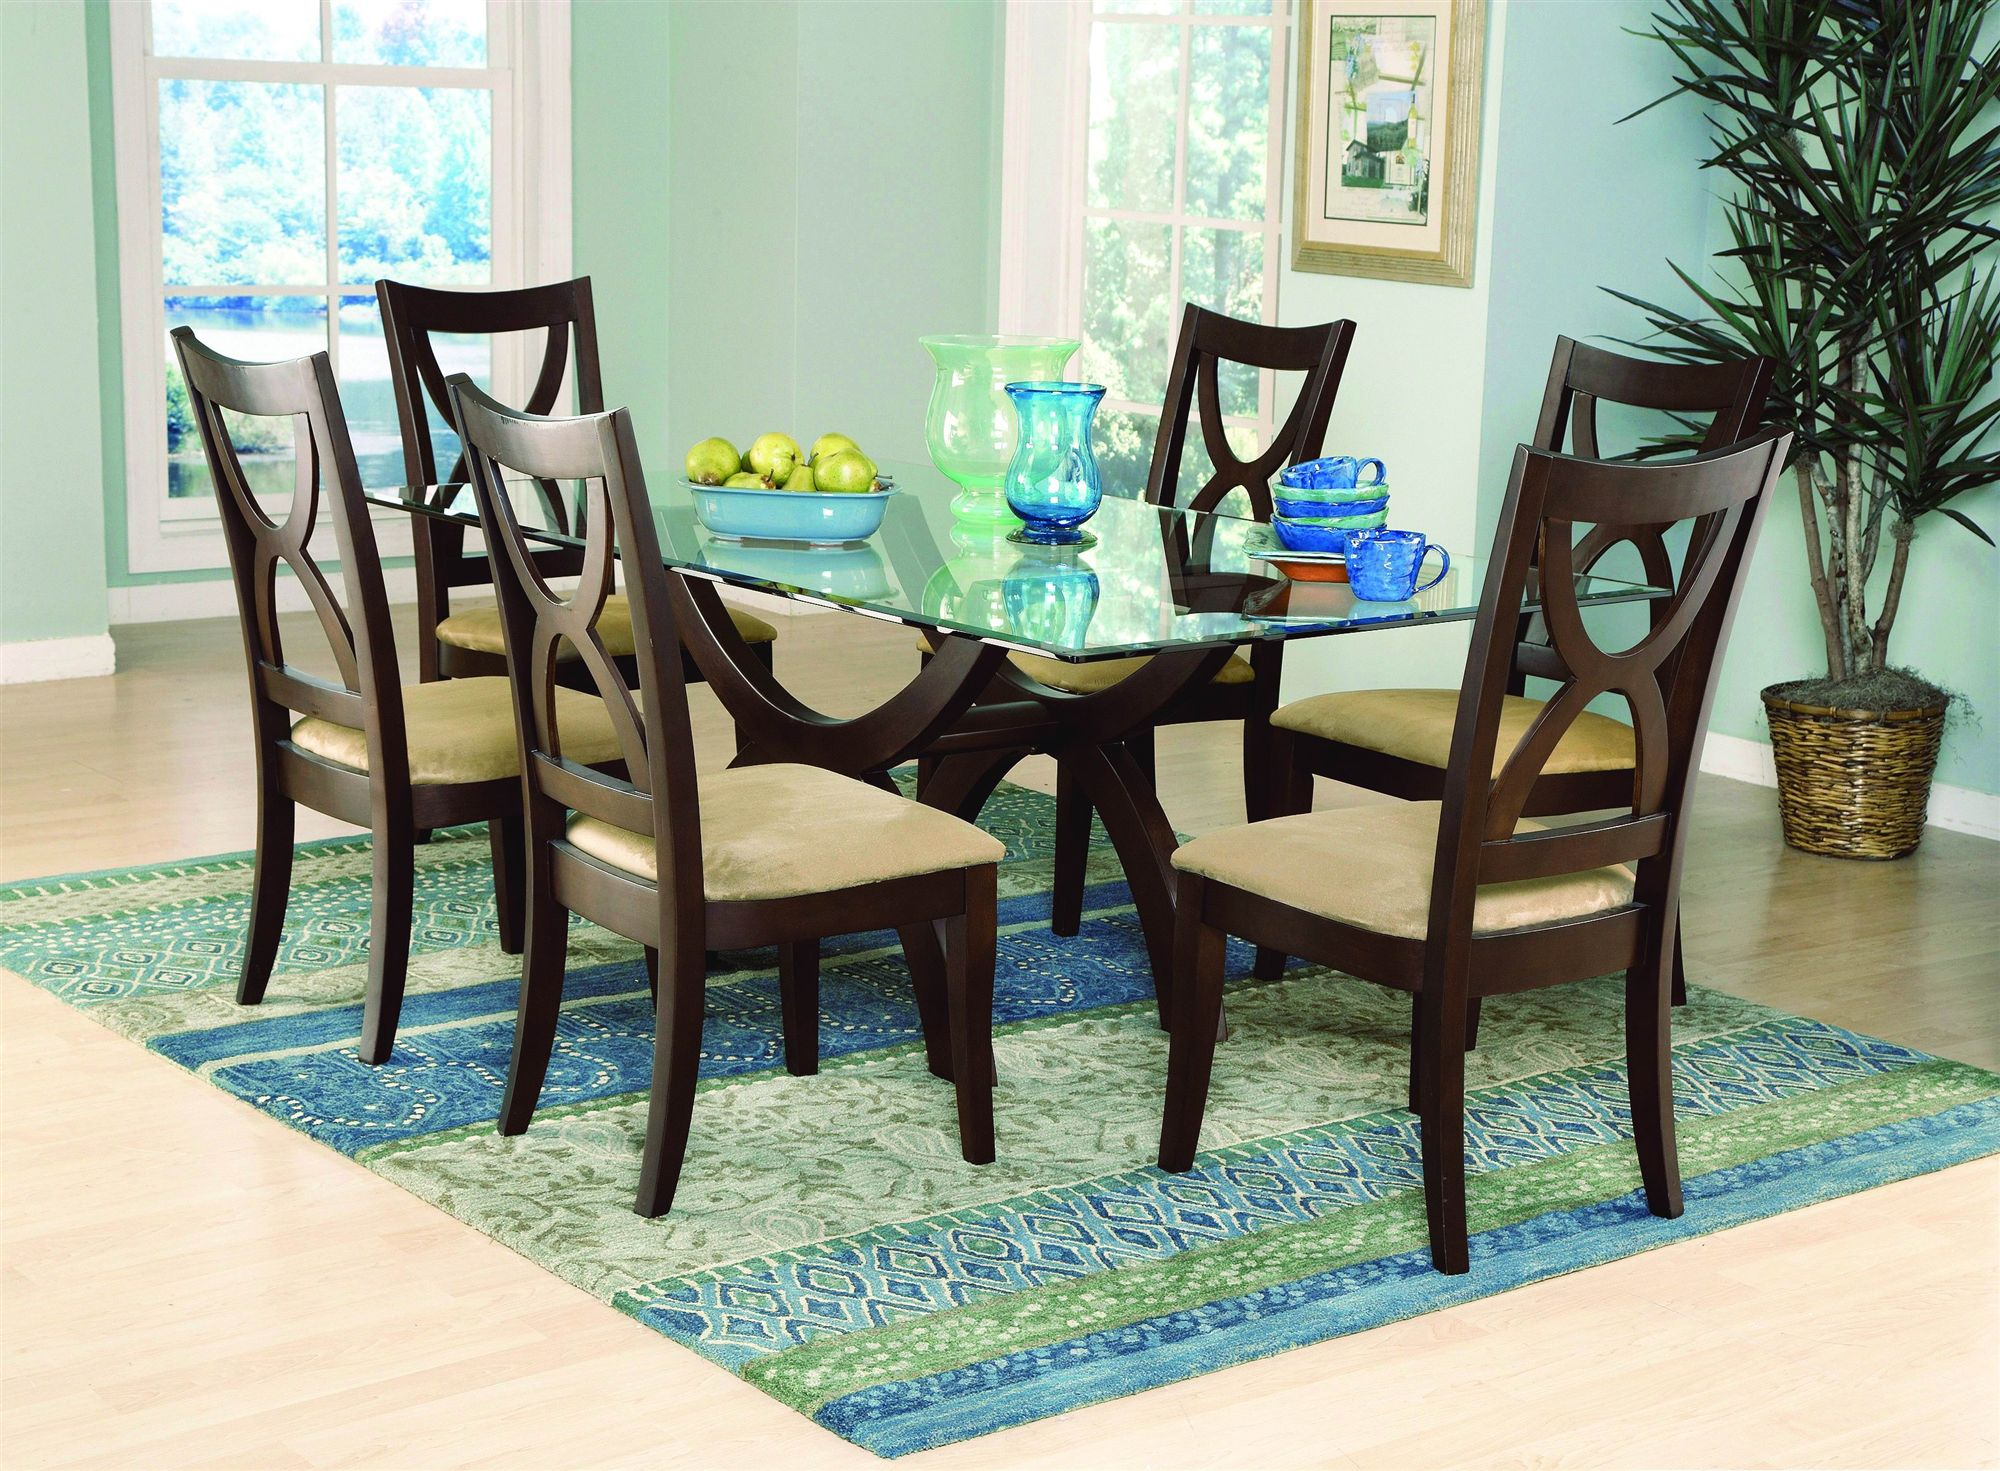 https://gotohomerepair.com/wp-content/uploads/2014/09/Oval-Glass-Dining-Table-With-Wood-Base-Dining-Rooms-Design-Idea.jpg